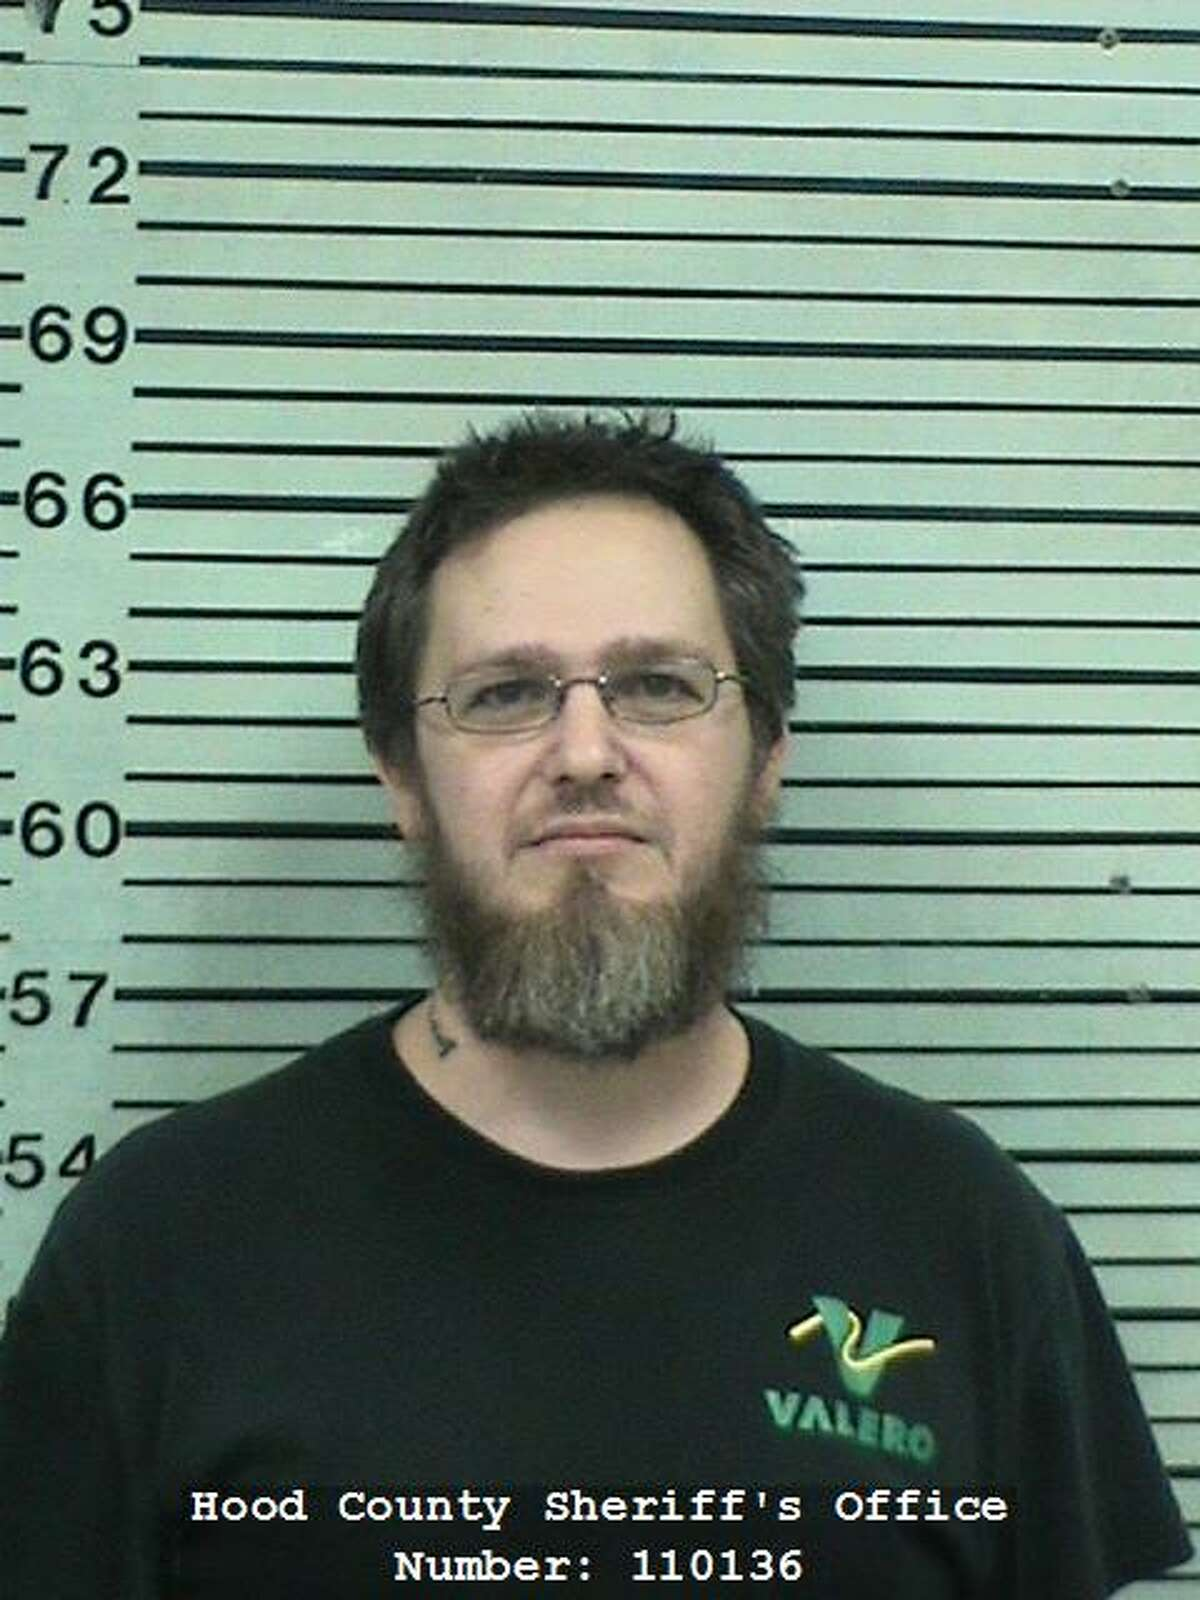 Justin Douglas Pelfrey was arrested March 4, 2017 in Hood County and charged with the sale of alcohol to a minor.